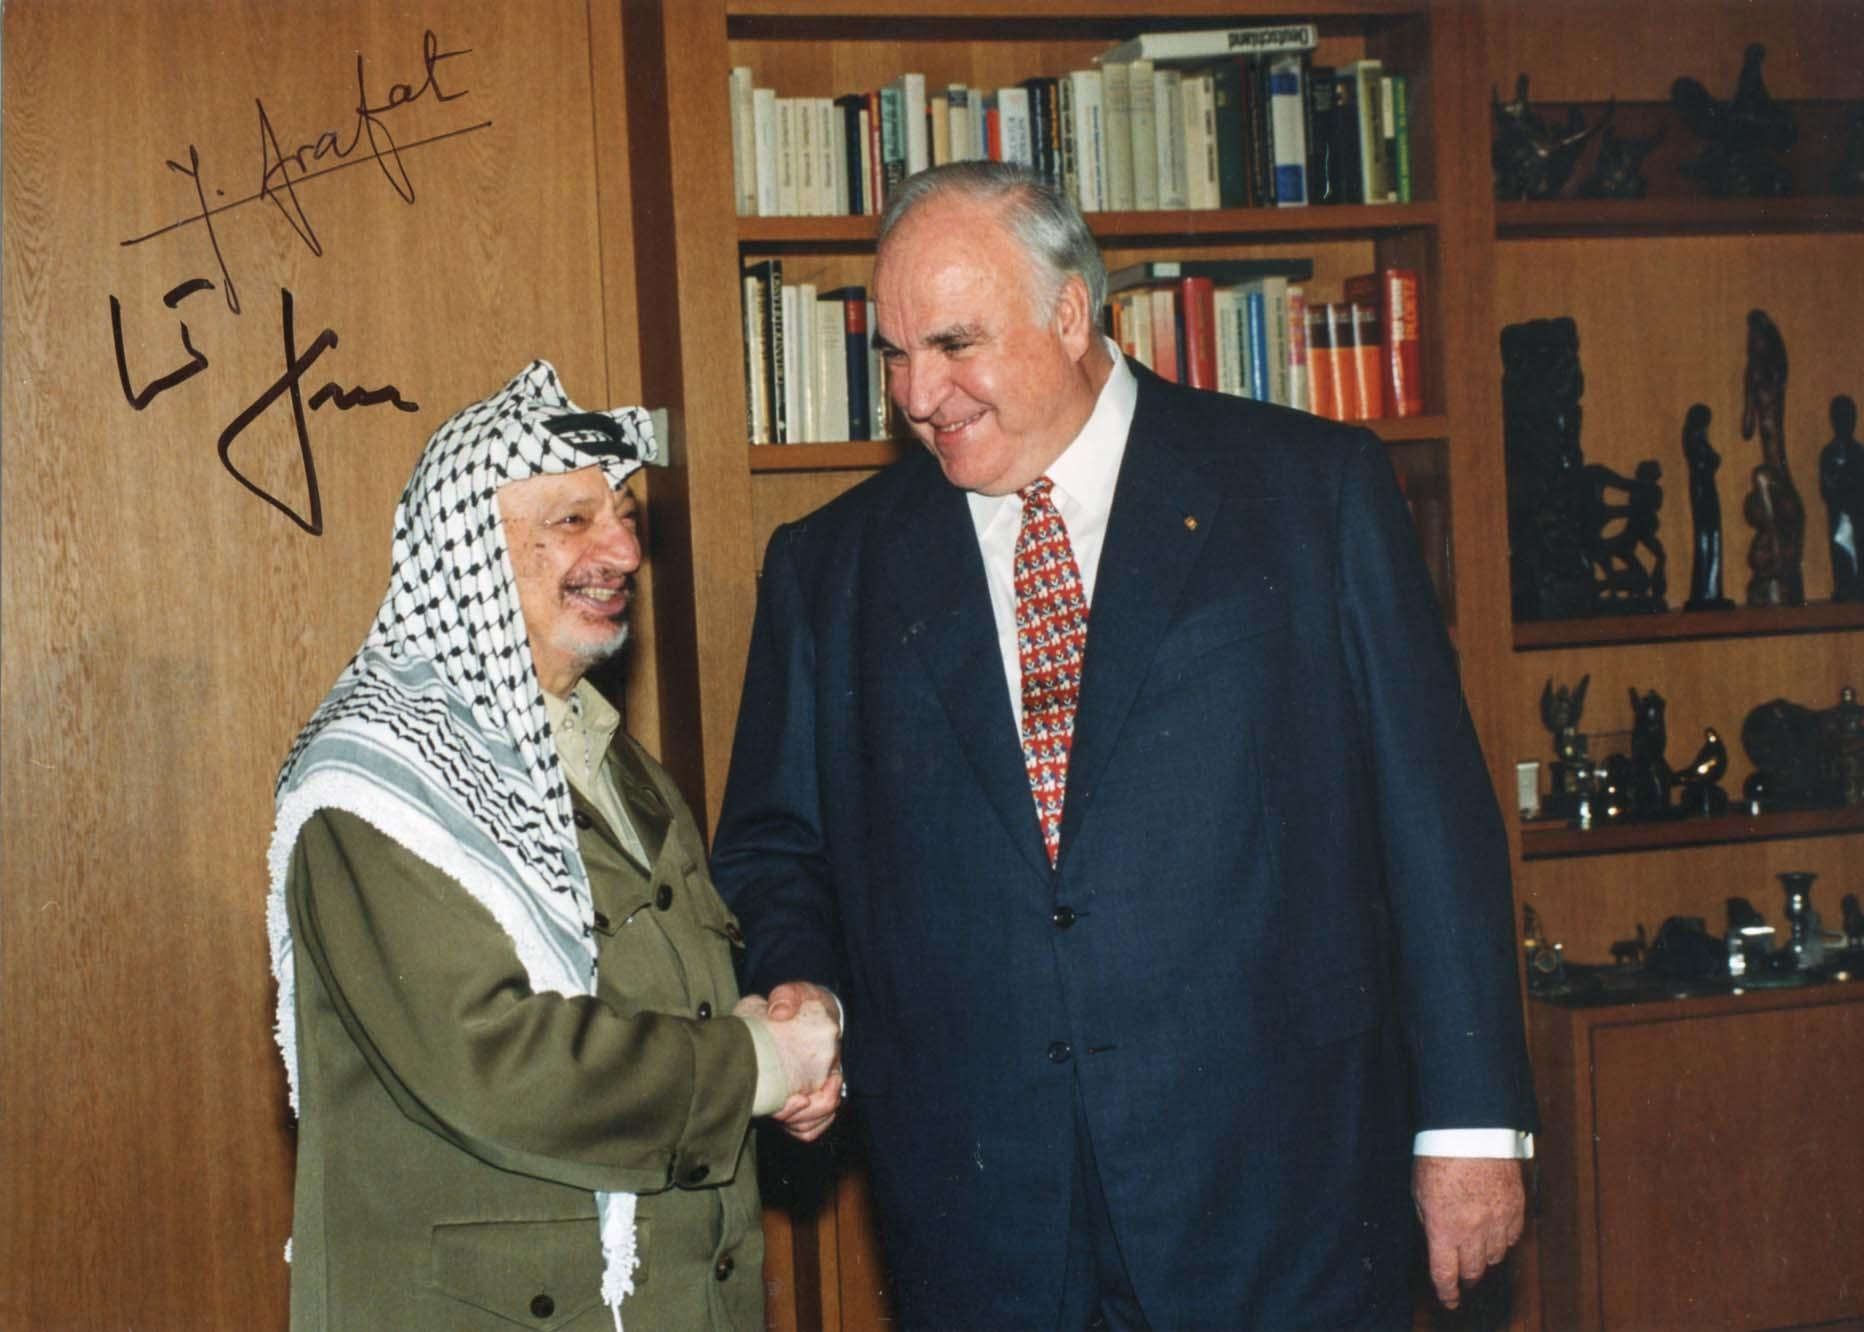 Arafat, Yasser & Kohl, Helmut & Chancellor of Germany from 1982 to 1998 - Autograph Yasser & Helmut Arafat & Kohl (1st President of the Palestinian N Arafat, Yasser & Kohl, Helmut & Chancellor of Germany from 1982 to 1998 Signed press photograph, shows Yasser Arafat and Helmut Kohl during a meeting in Germany (23.-25.10.1997), 9,5 x 6,75 inch, signed by Yasser Arafat in black ink and by Helmut Kohl in black sharpie, with slightly trimmed edges - in fine to very fine condition.